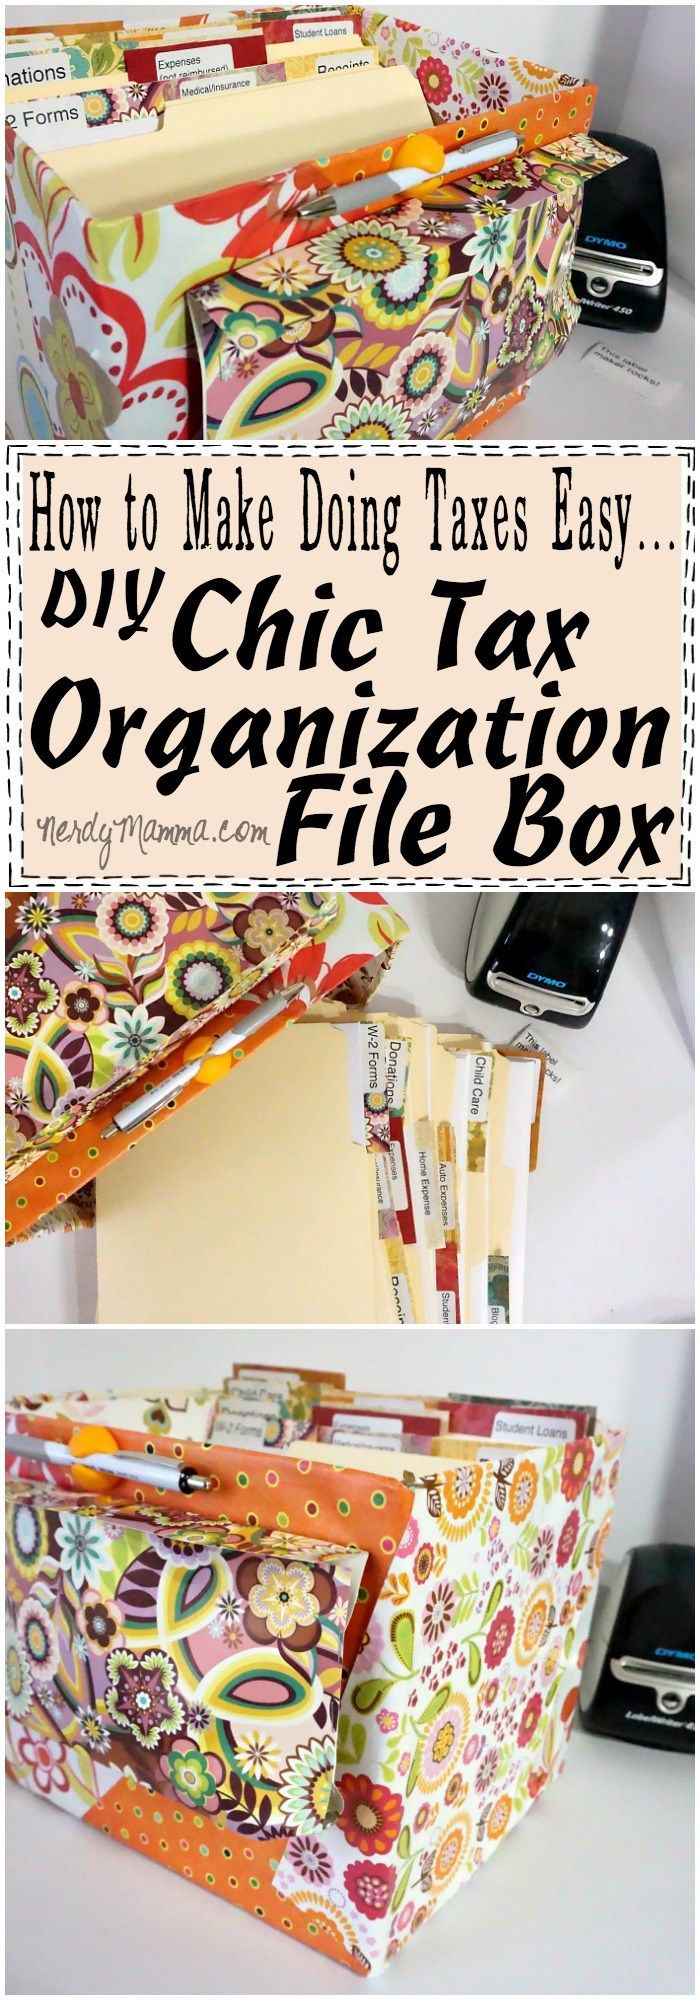 I Love This Diy Chic Taxanization File Boxi Can Totally See